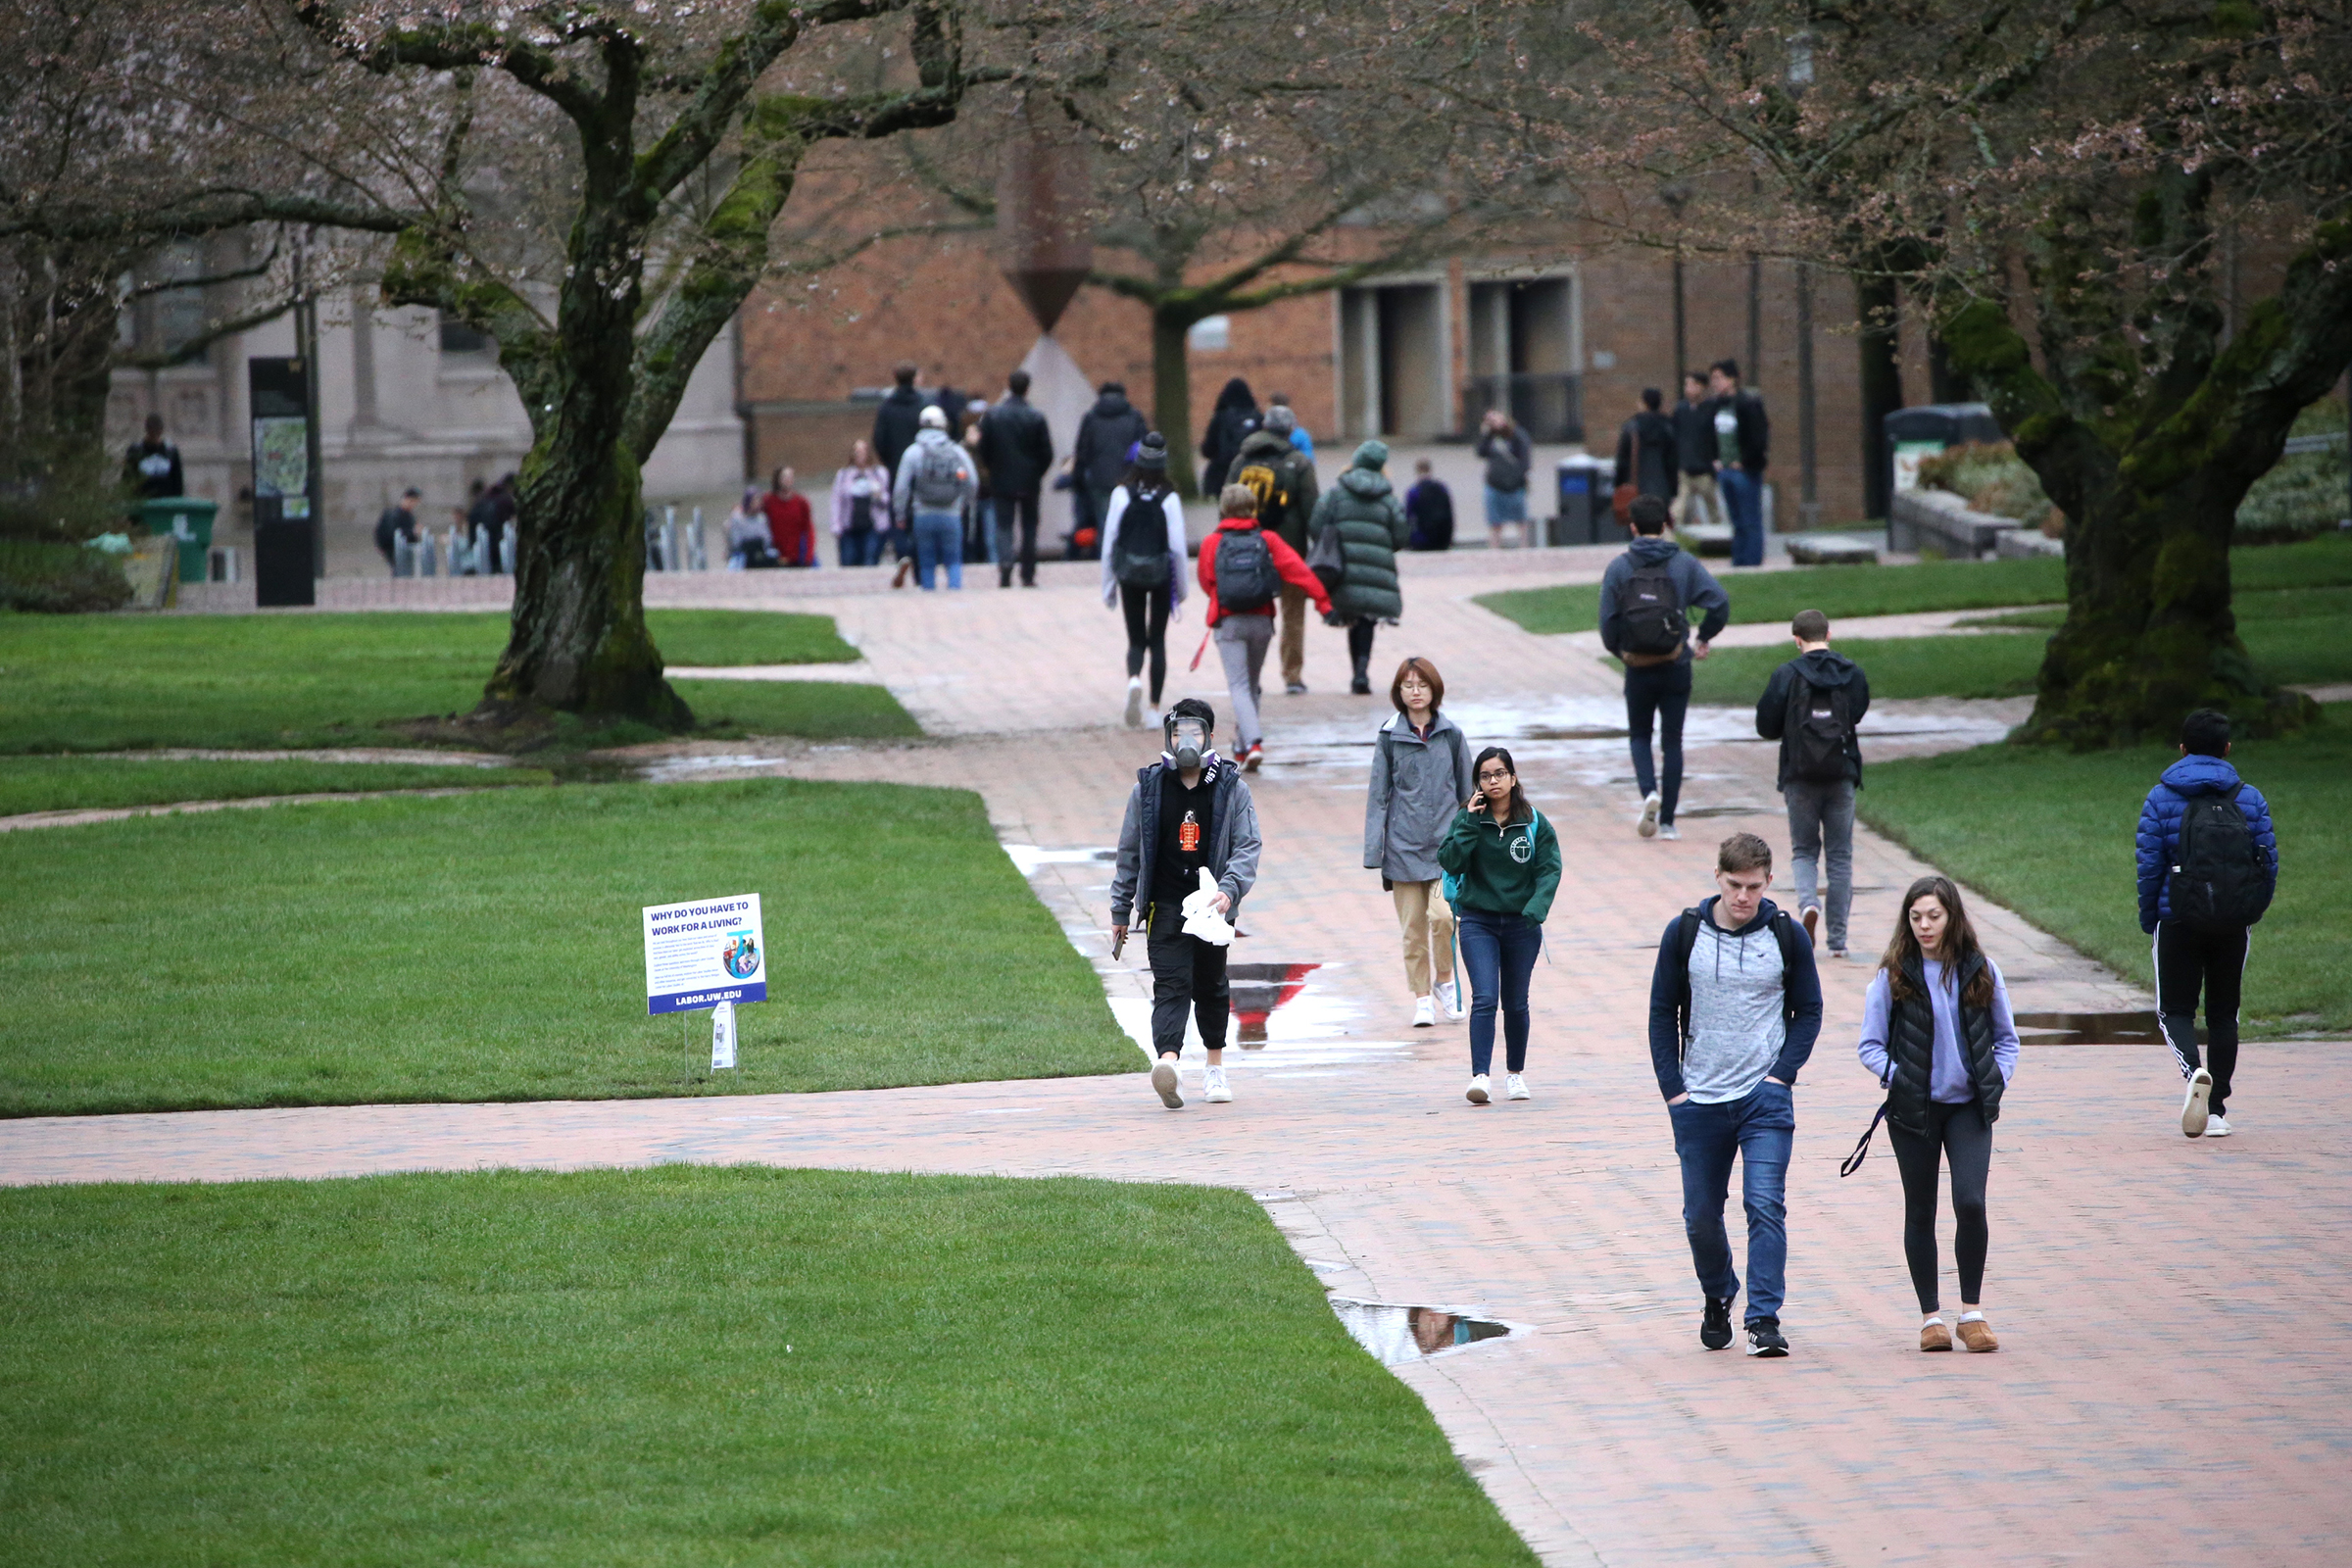 Students at the  University of Washington on campus for the last day of in-person classes on March 6, 2020 in Seattle, Washington.